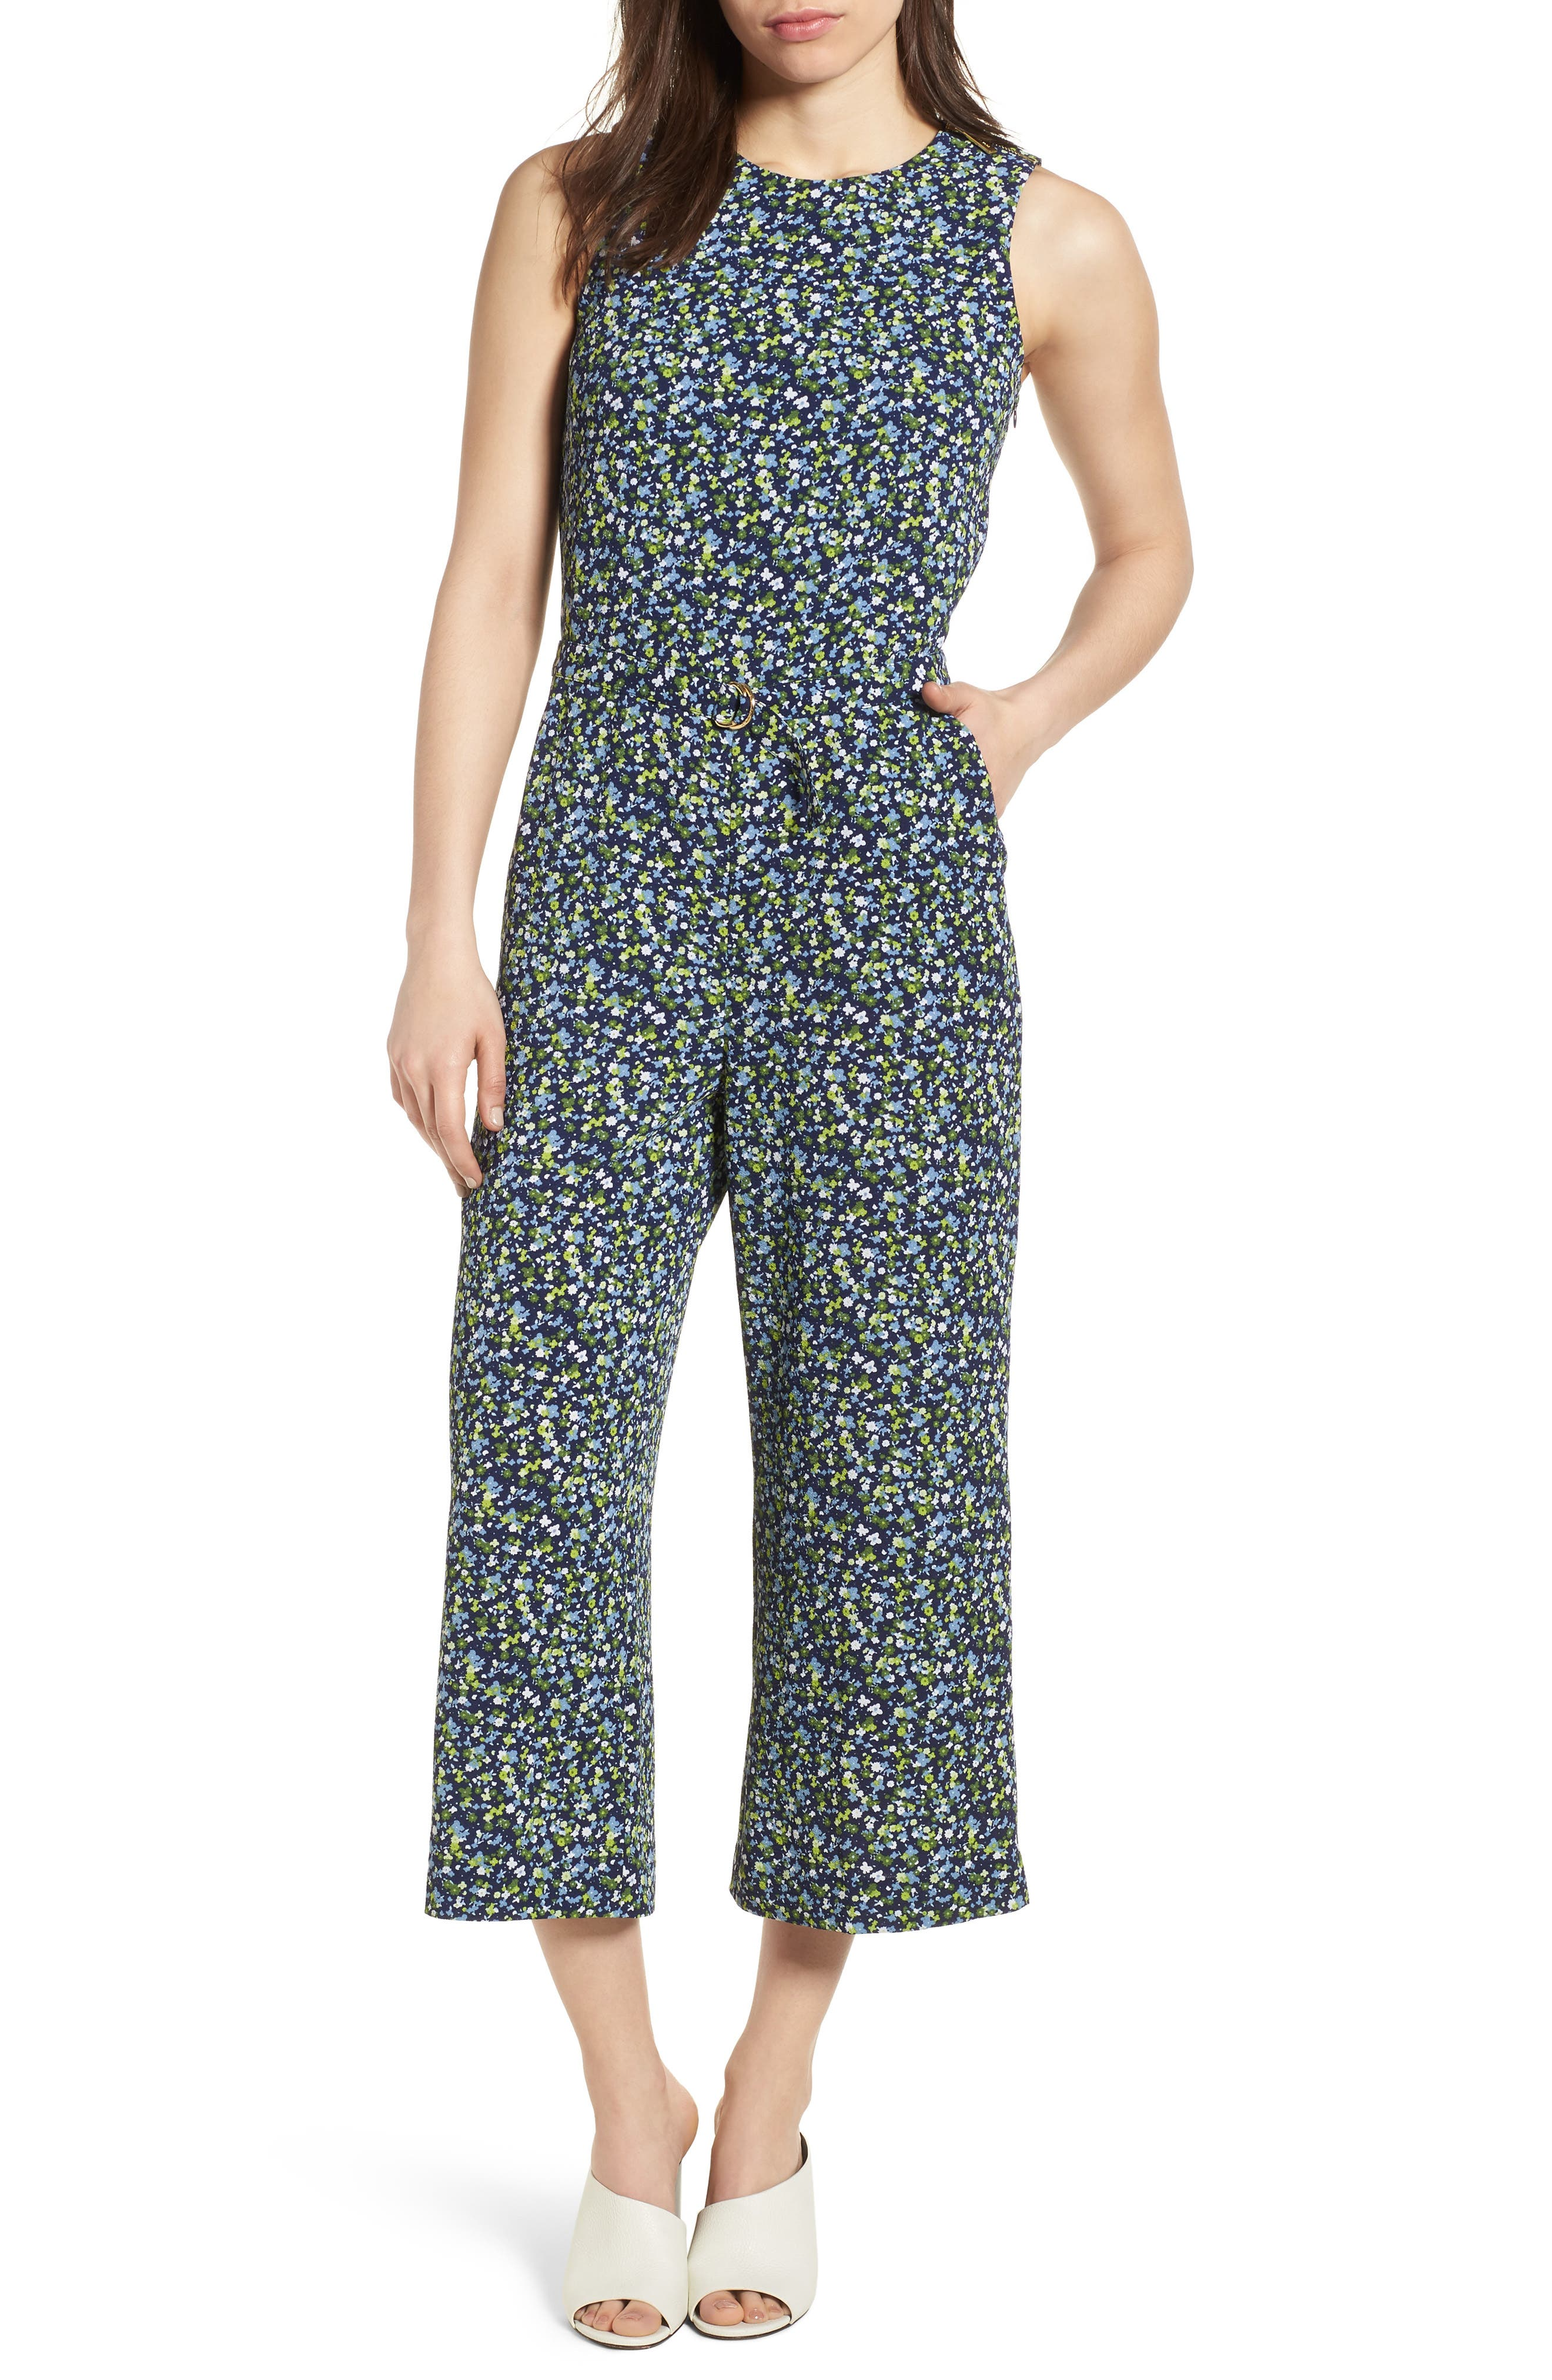 Wildflower Print Jumpsuit,                             Main thumbnail 1, color,                             362